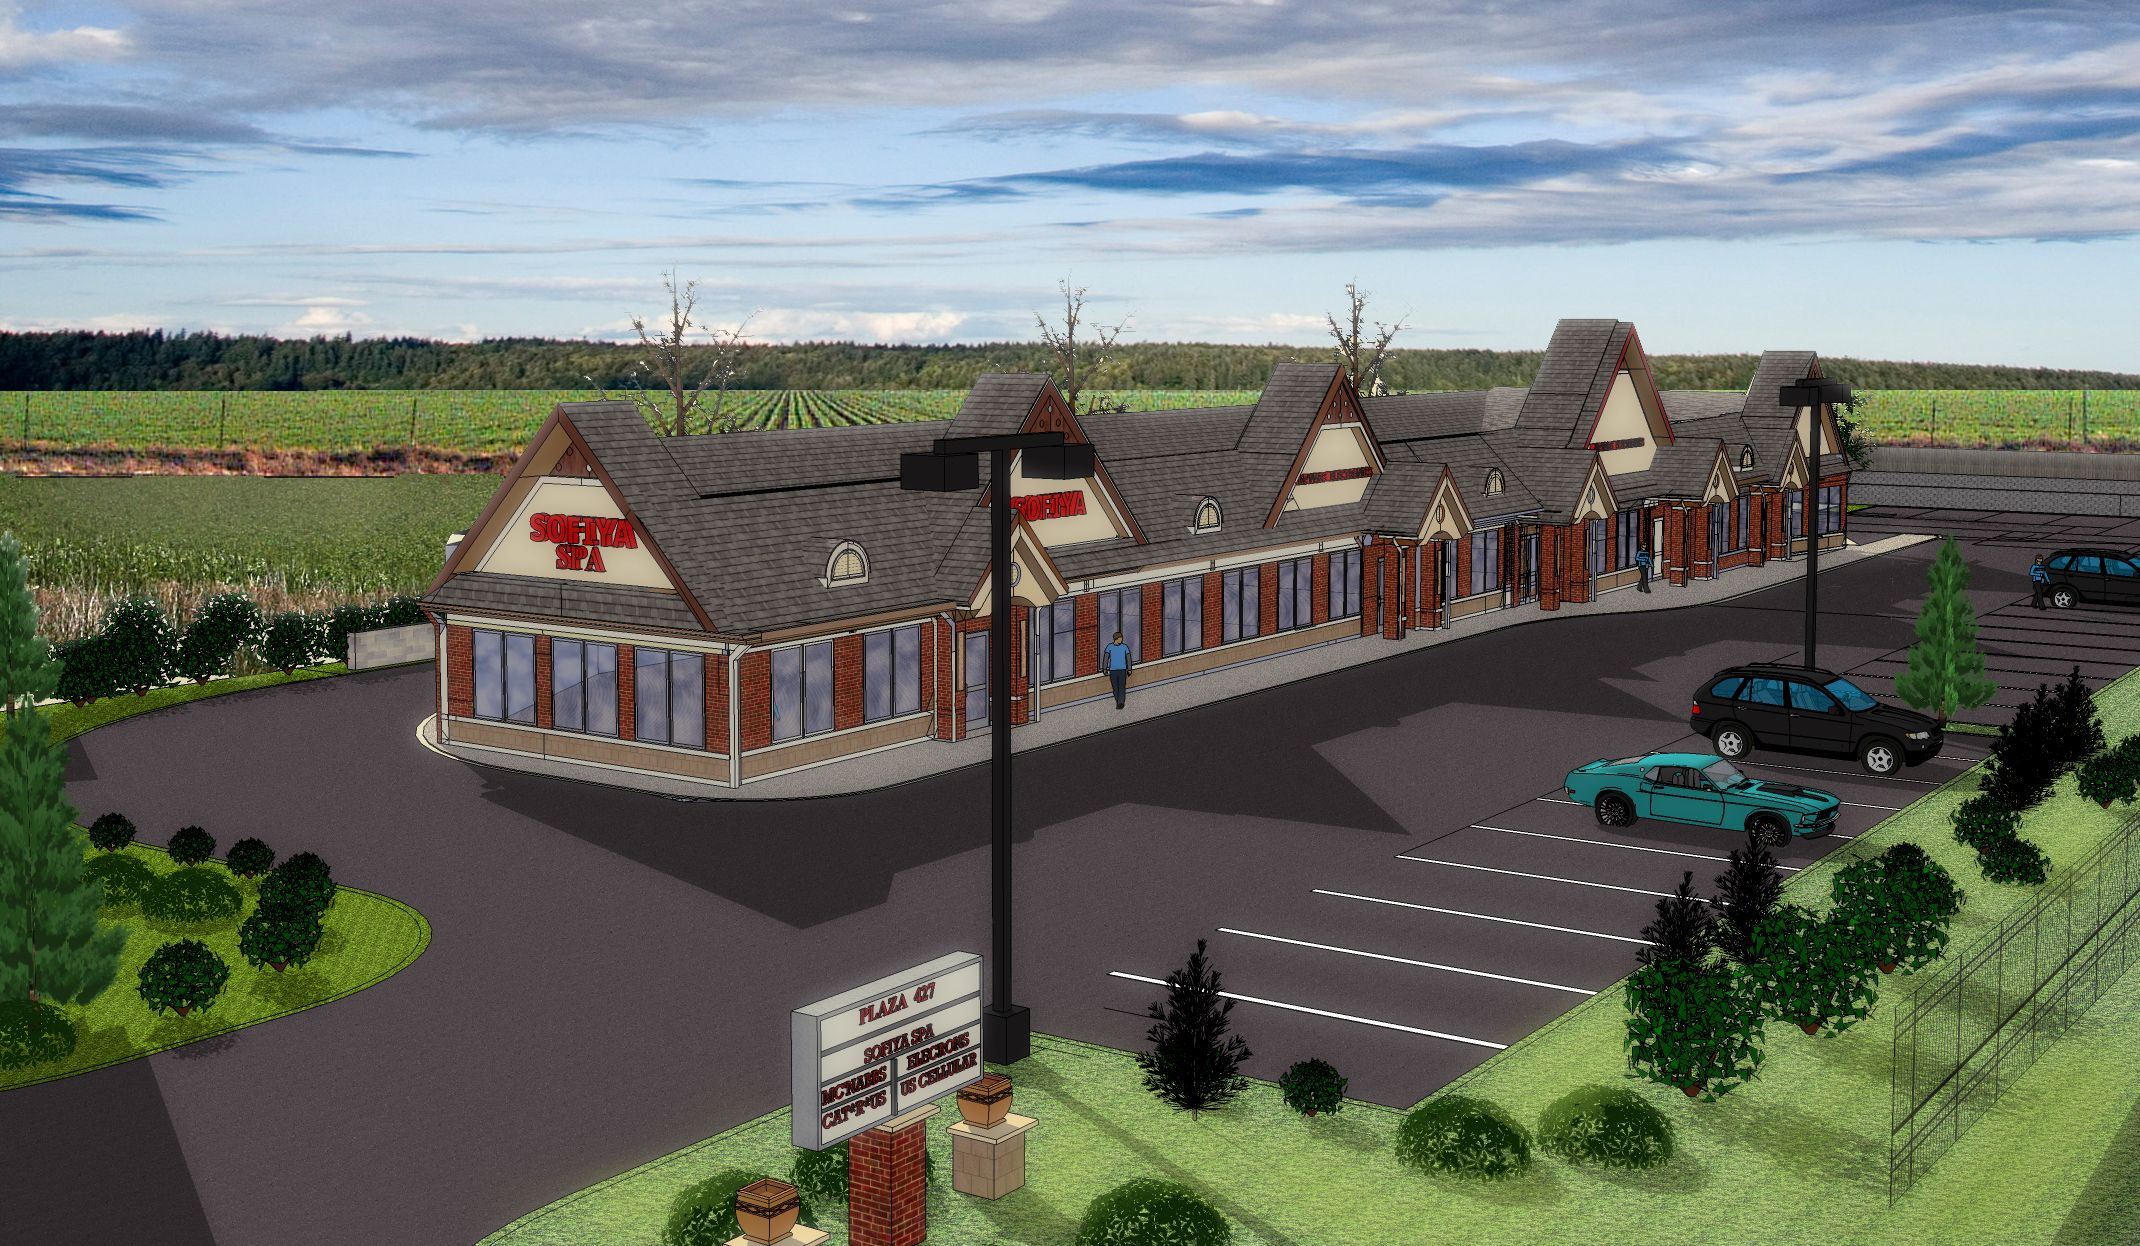 Amusing investing in strip malls can